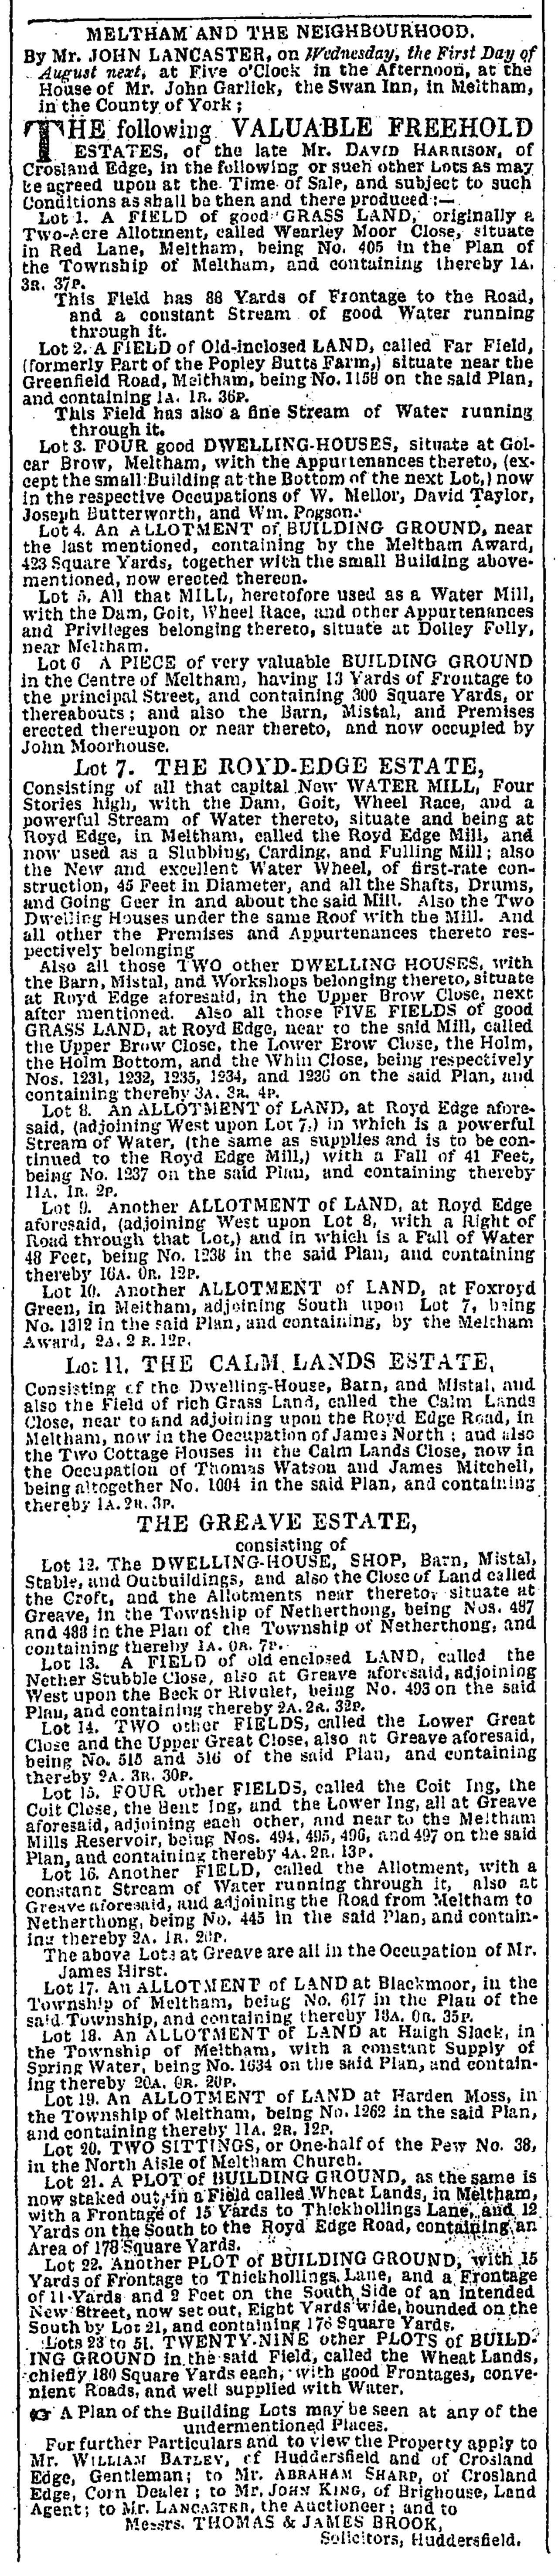 Leeds Mercury, Saturday, July 28, 1838 - auction of land in Meltham.png